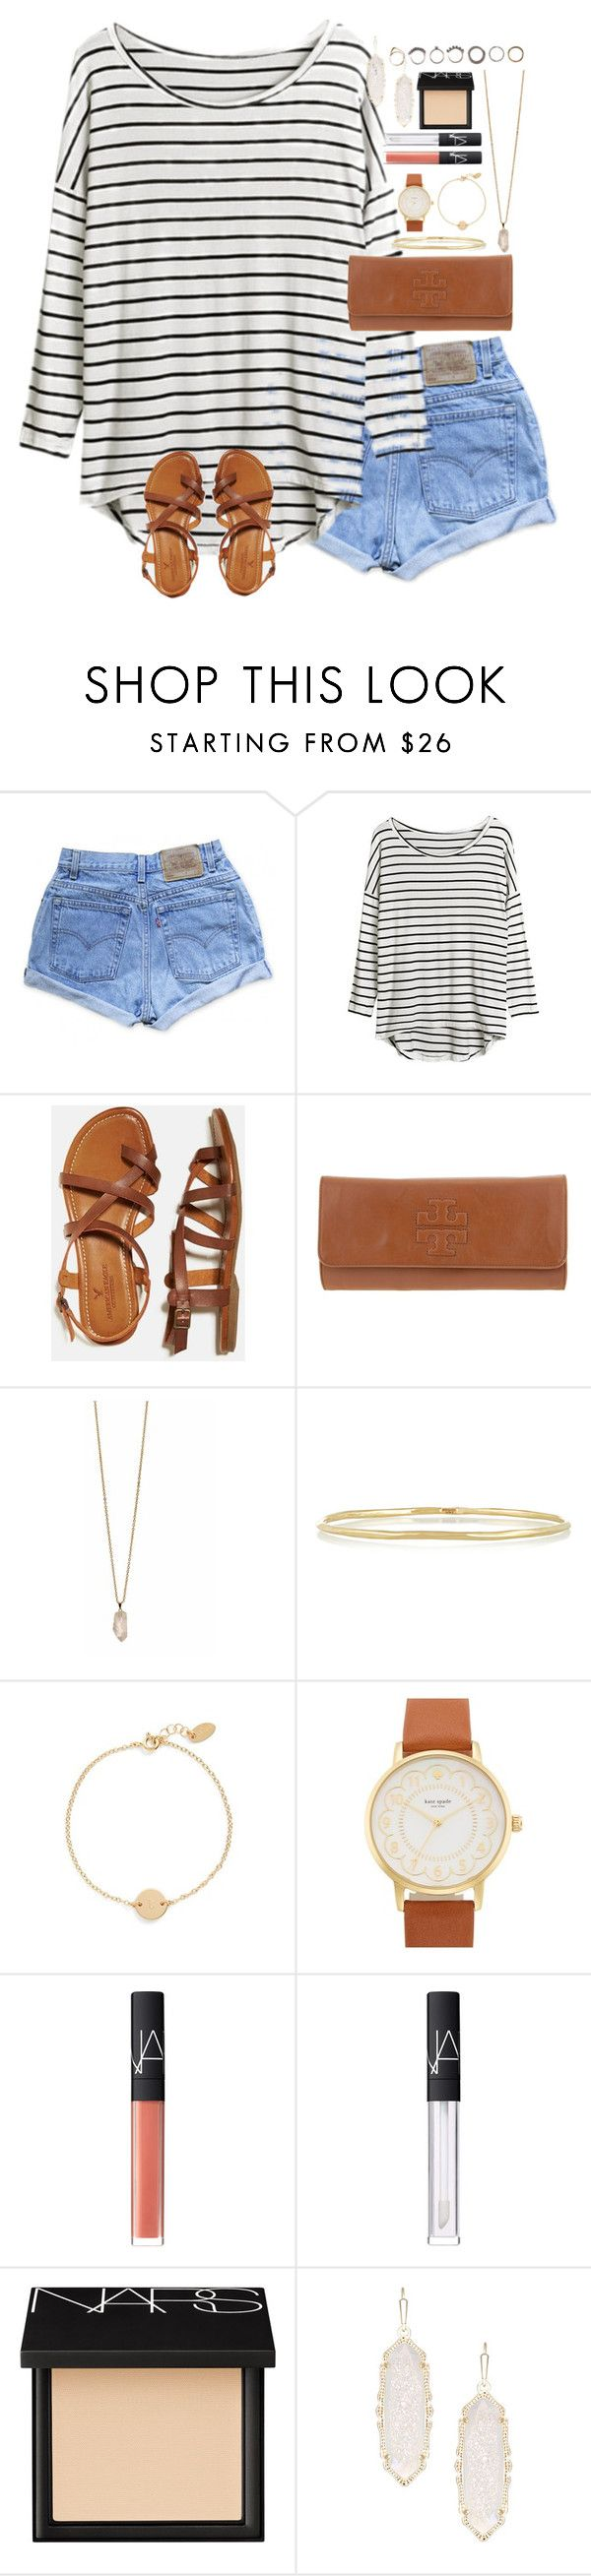 """Sometimes it all gets a little too much, but you gotta realize that soon the fog will clear up"" by lauren-hailey ❤ liked on Polyvore featuring Levi's, American Eagle Outfitters, Tory Burch, Zoya, Ippolita, Nashelle, Kate Spade, NARS Cosmetics, Kendra Scott and Iosselliani"